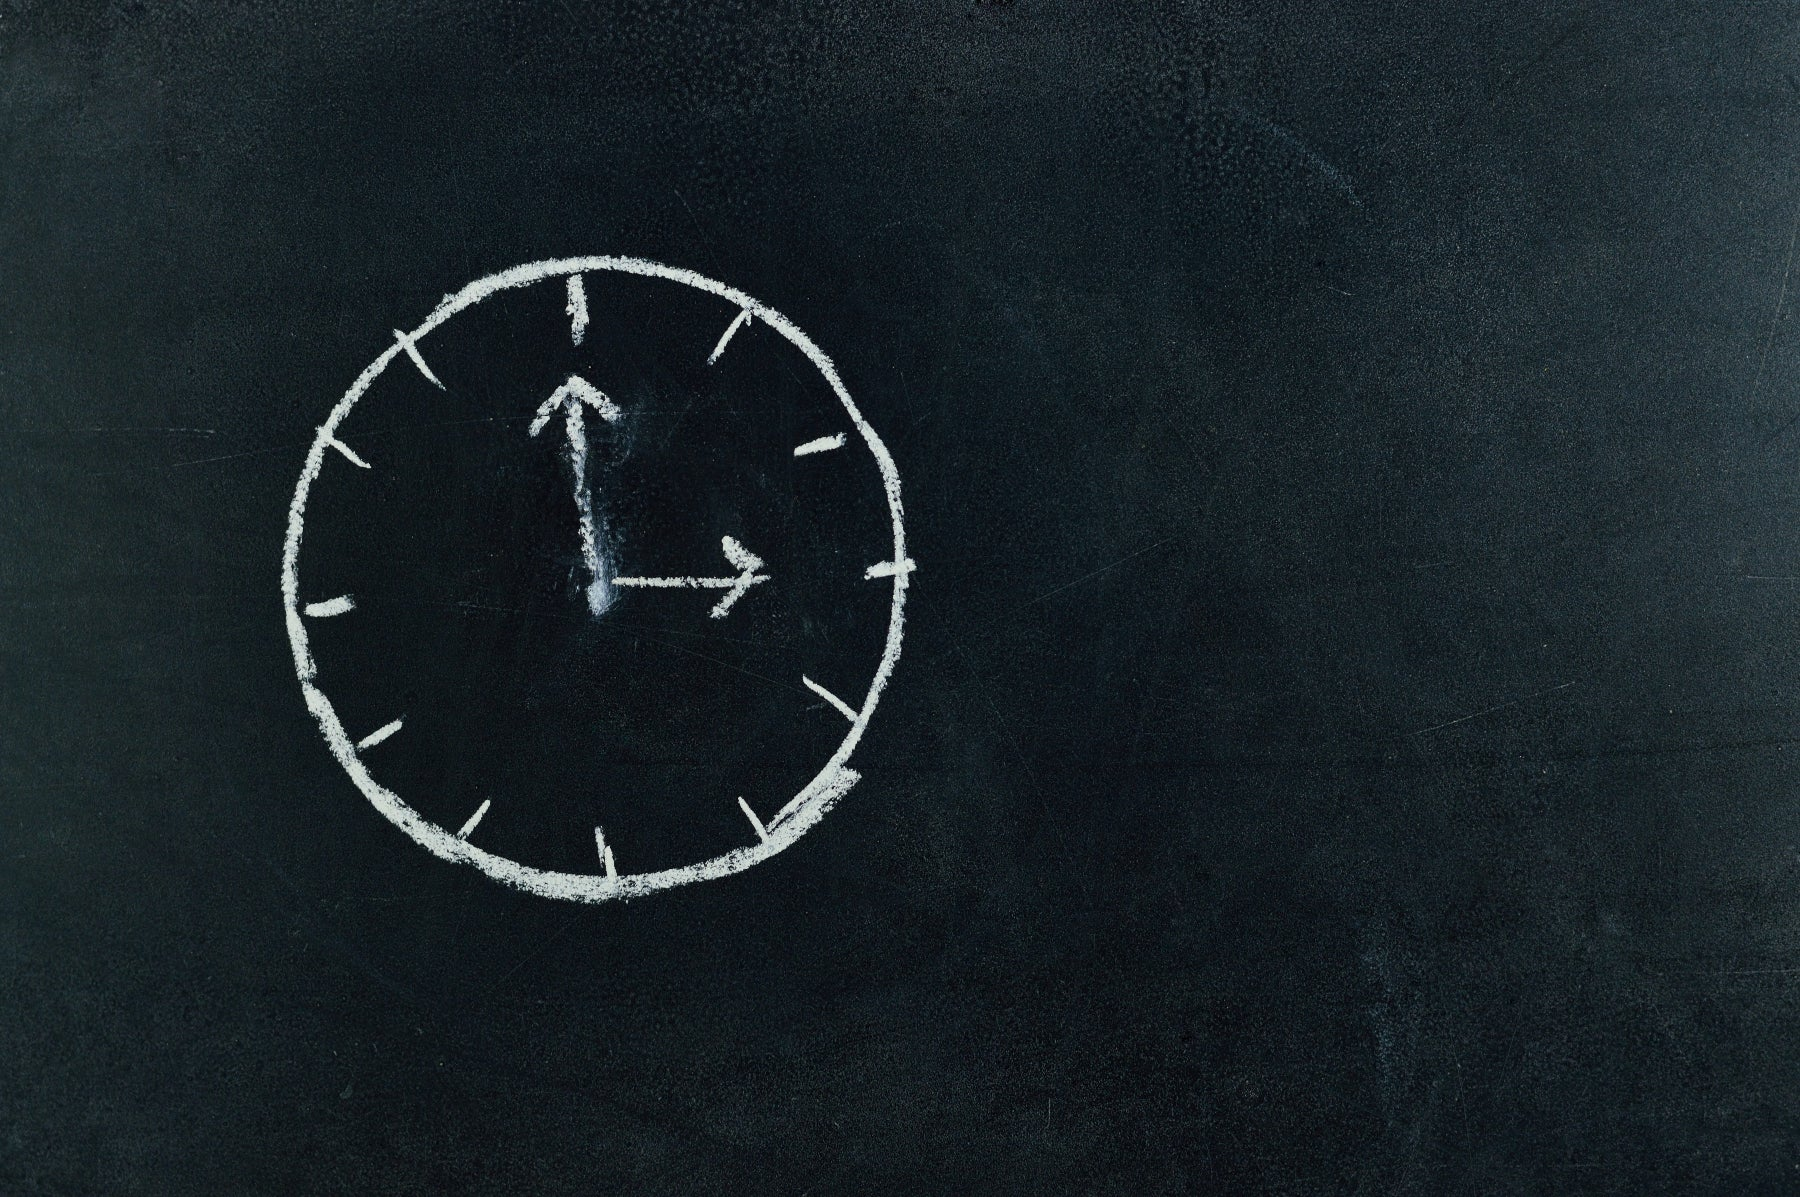 image of clock on chalkboard for article about how long certificate of good standing documents are good for